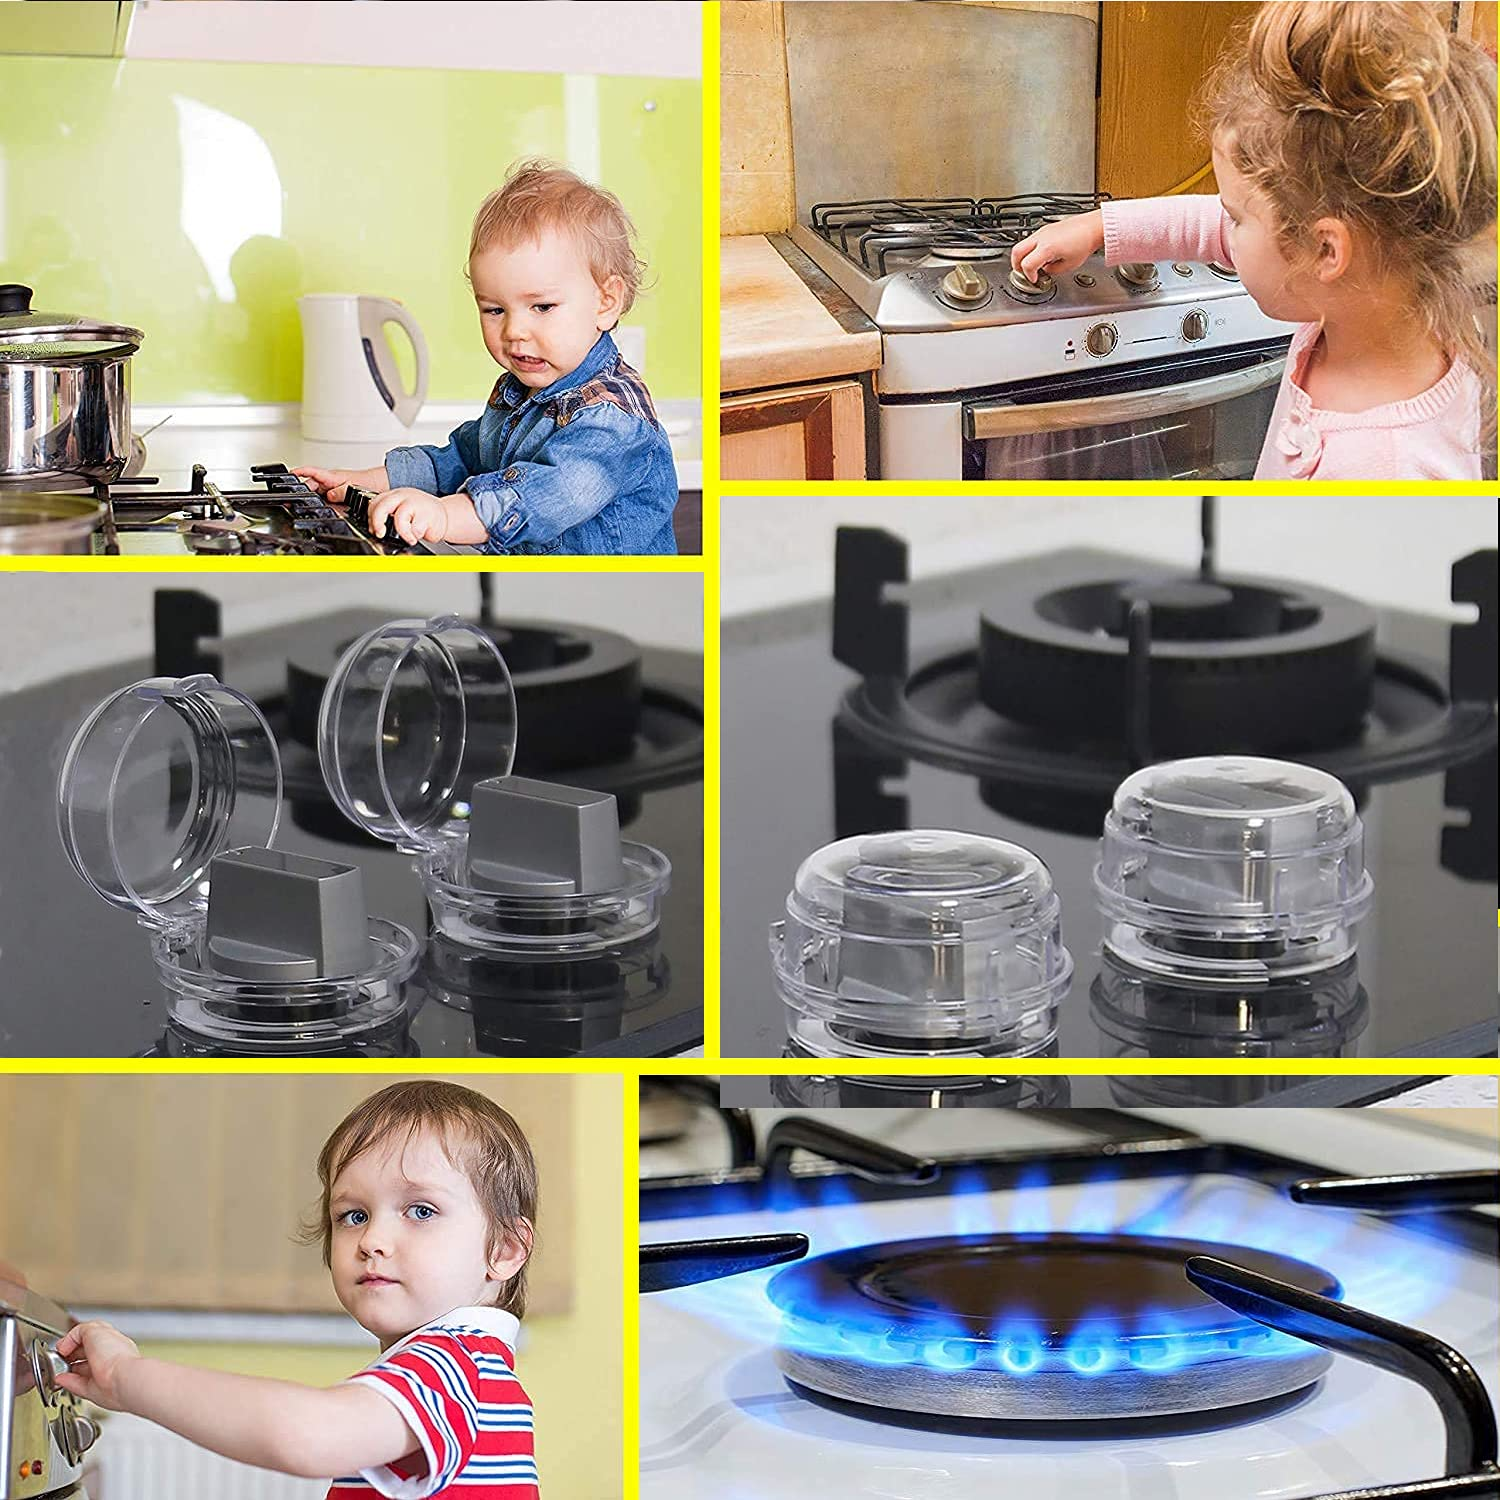 Stove Knob Covers for Child Safety, Gas Stove Knob Covers,Clear Safety Covers - Protect Little Kids with A Child Proof Lock for Oven/Stove Top/Gas Range - Baby(2pcs) (Blue)